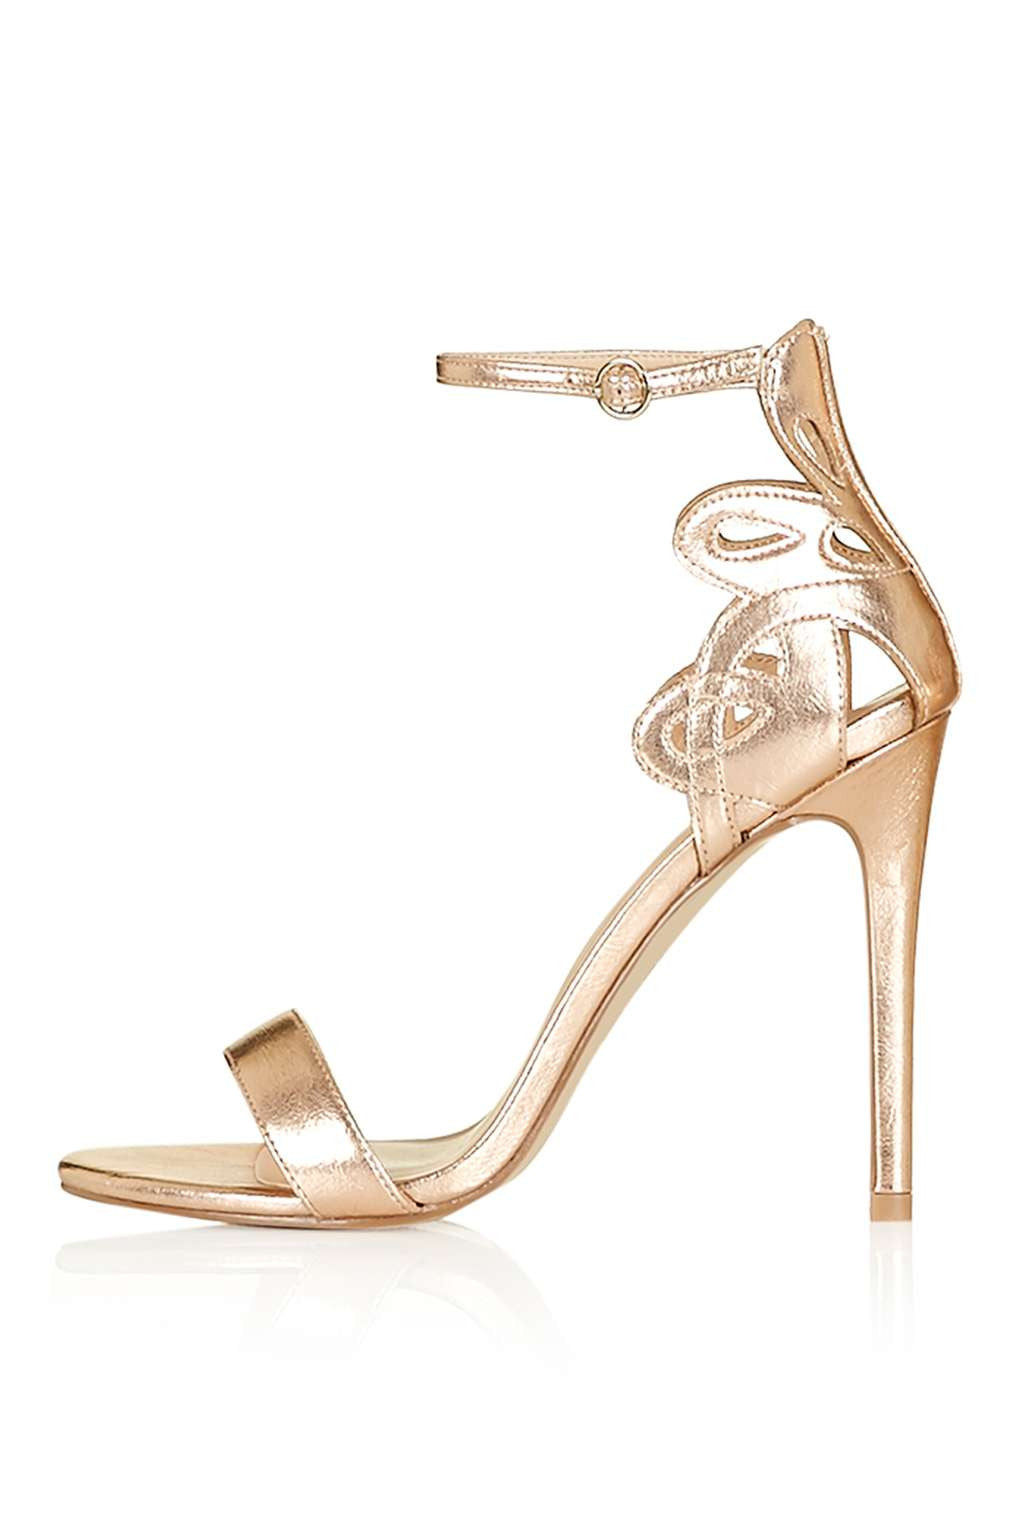 TopShop MINDY Cut-Out Detailed Two-Part Sandal